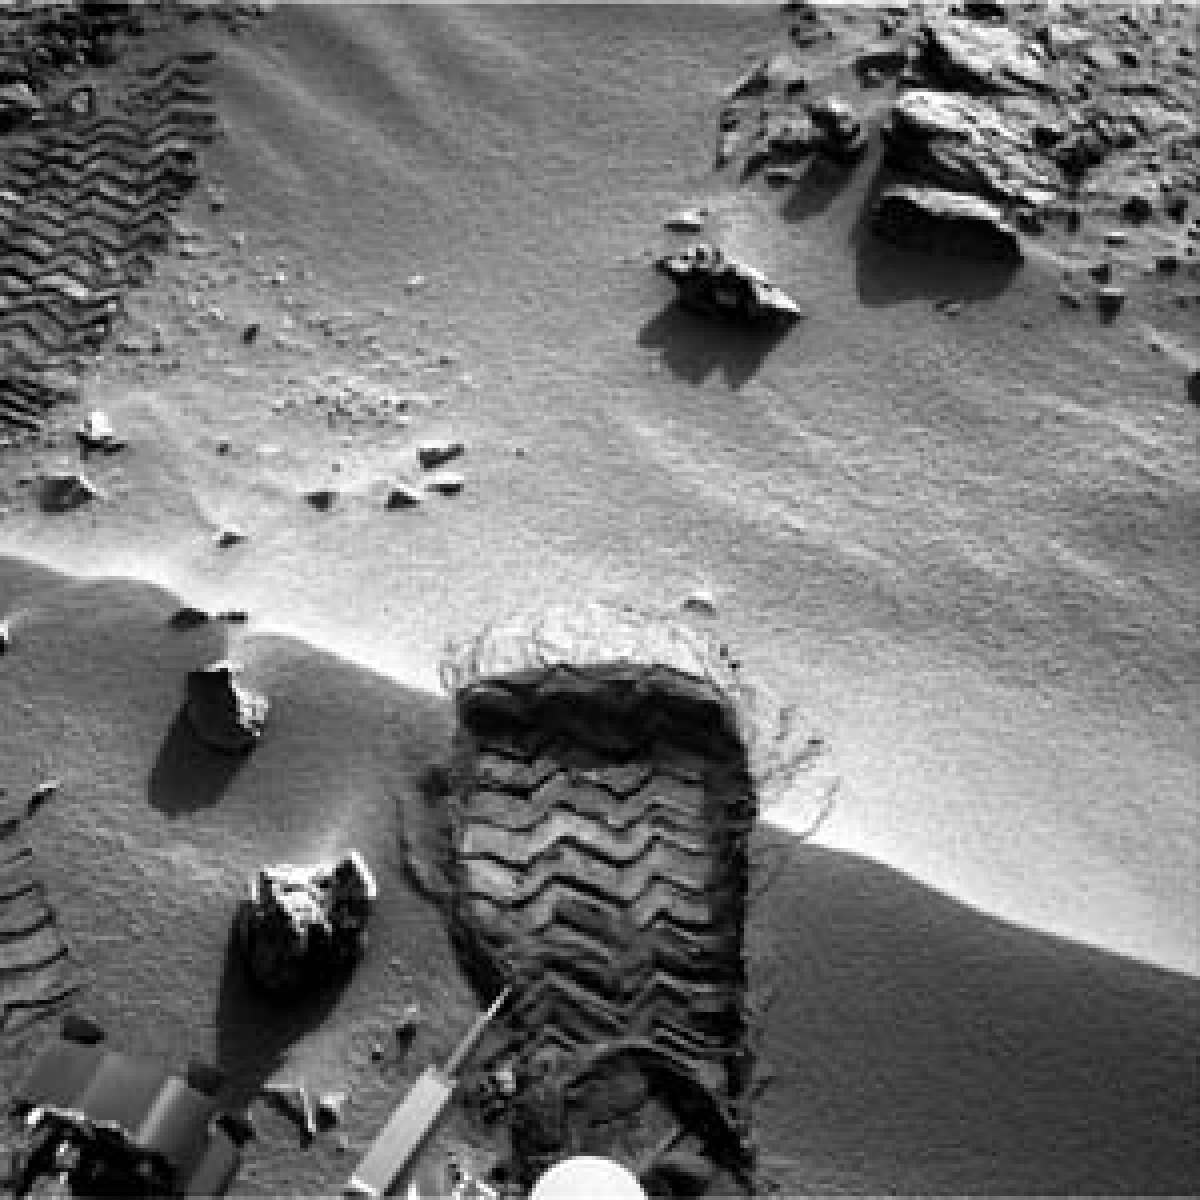 Pasta rocks, new sign of life on Mars